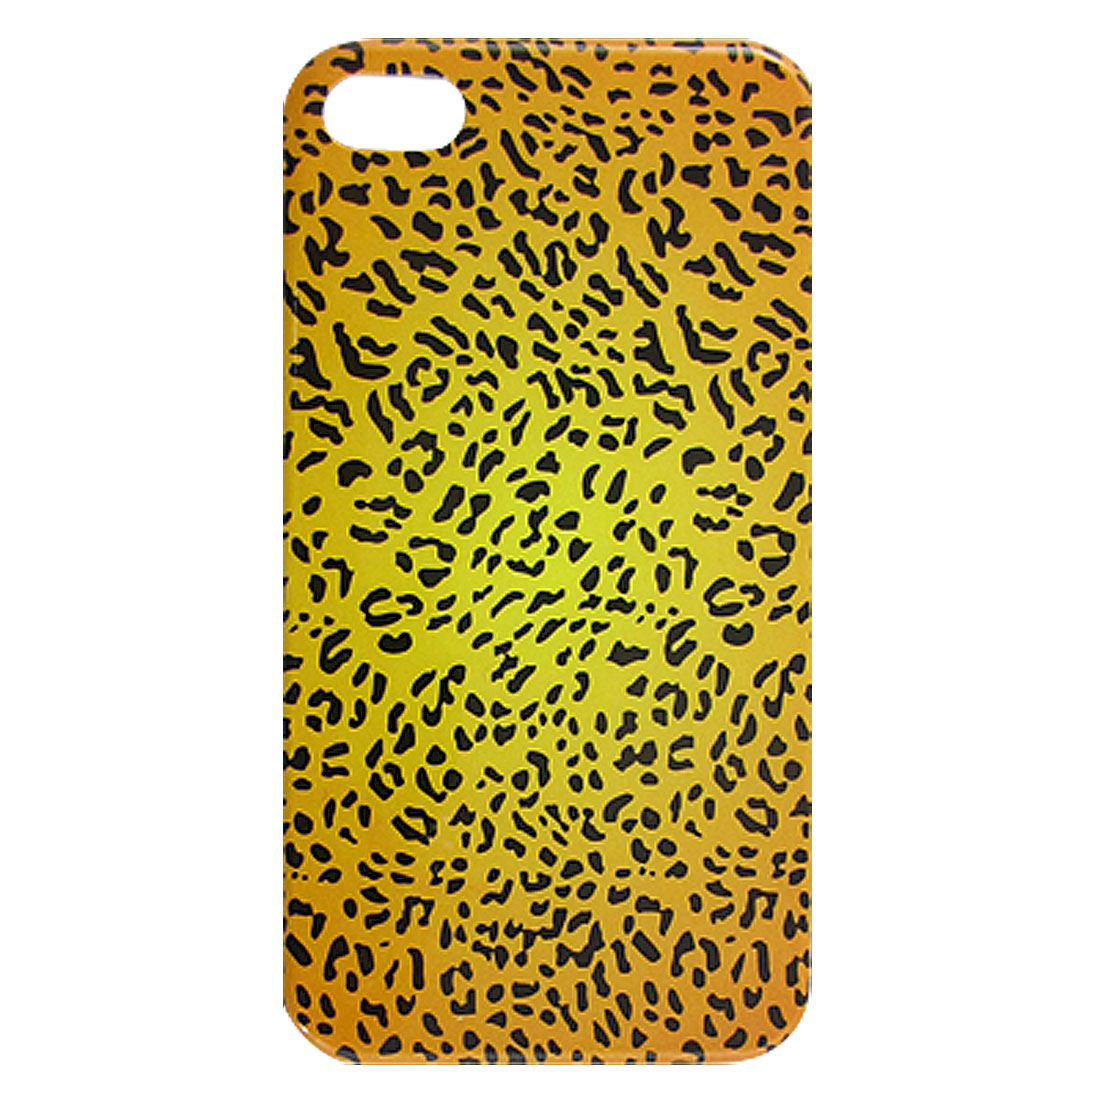 Leopard Print Hard Plastic IMD Back Case for iPhone 4 4G 4S